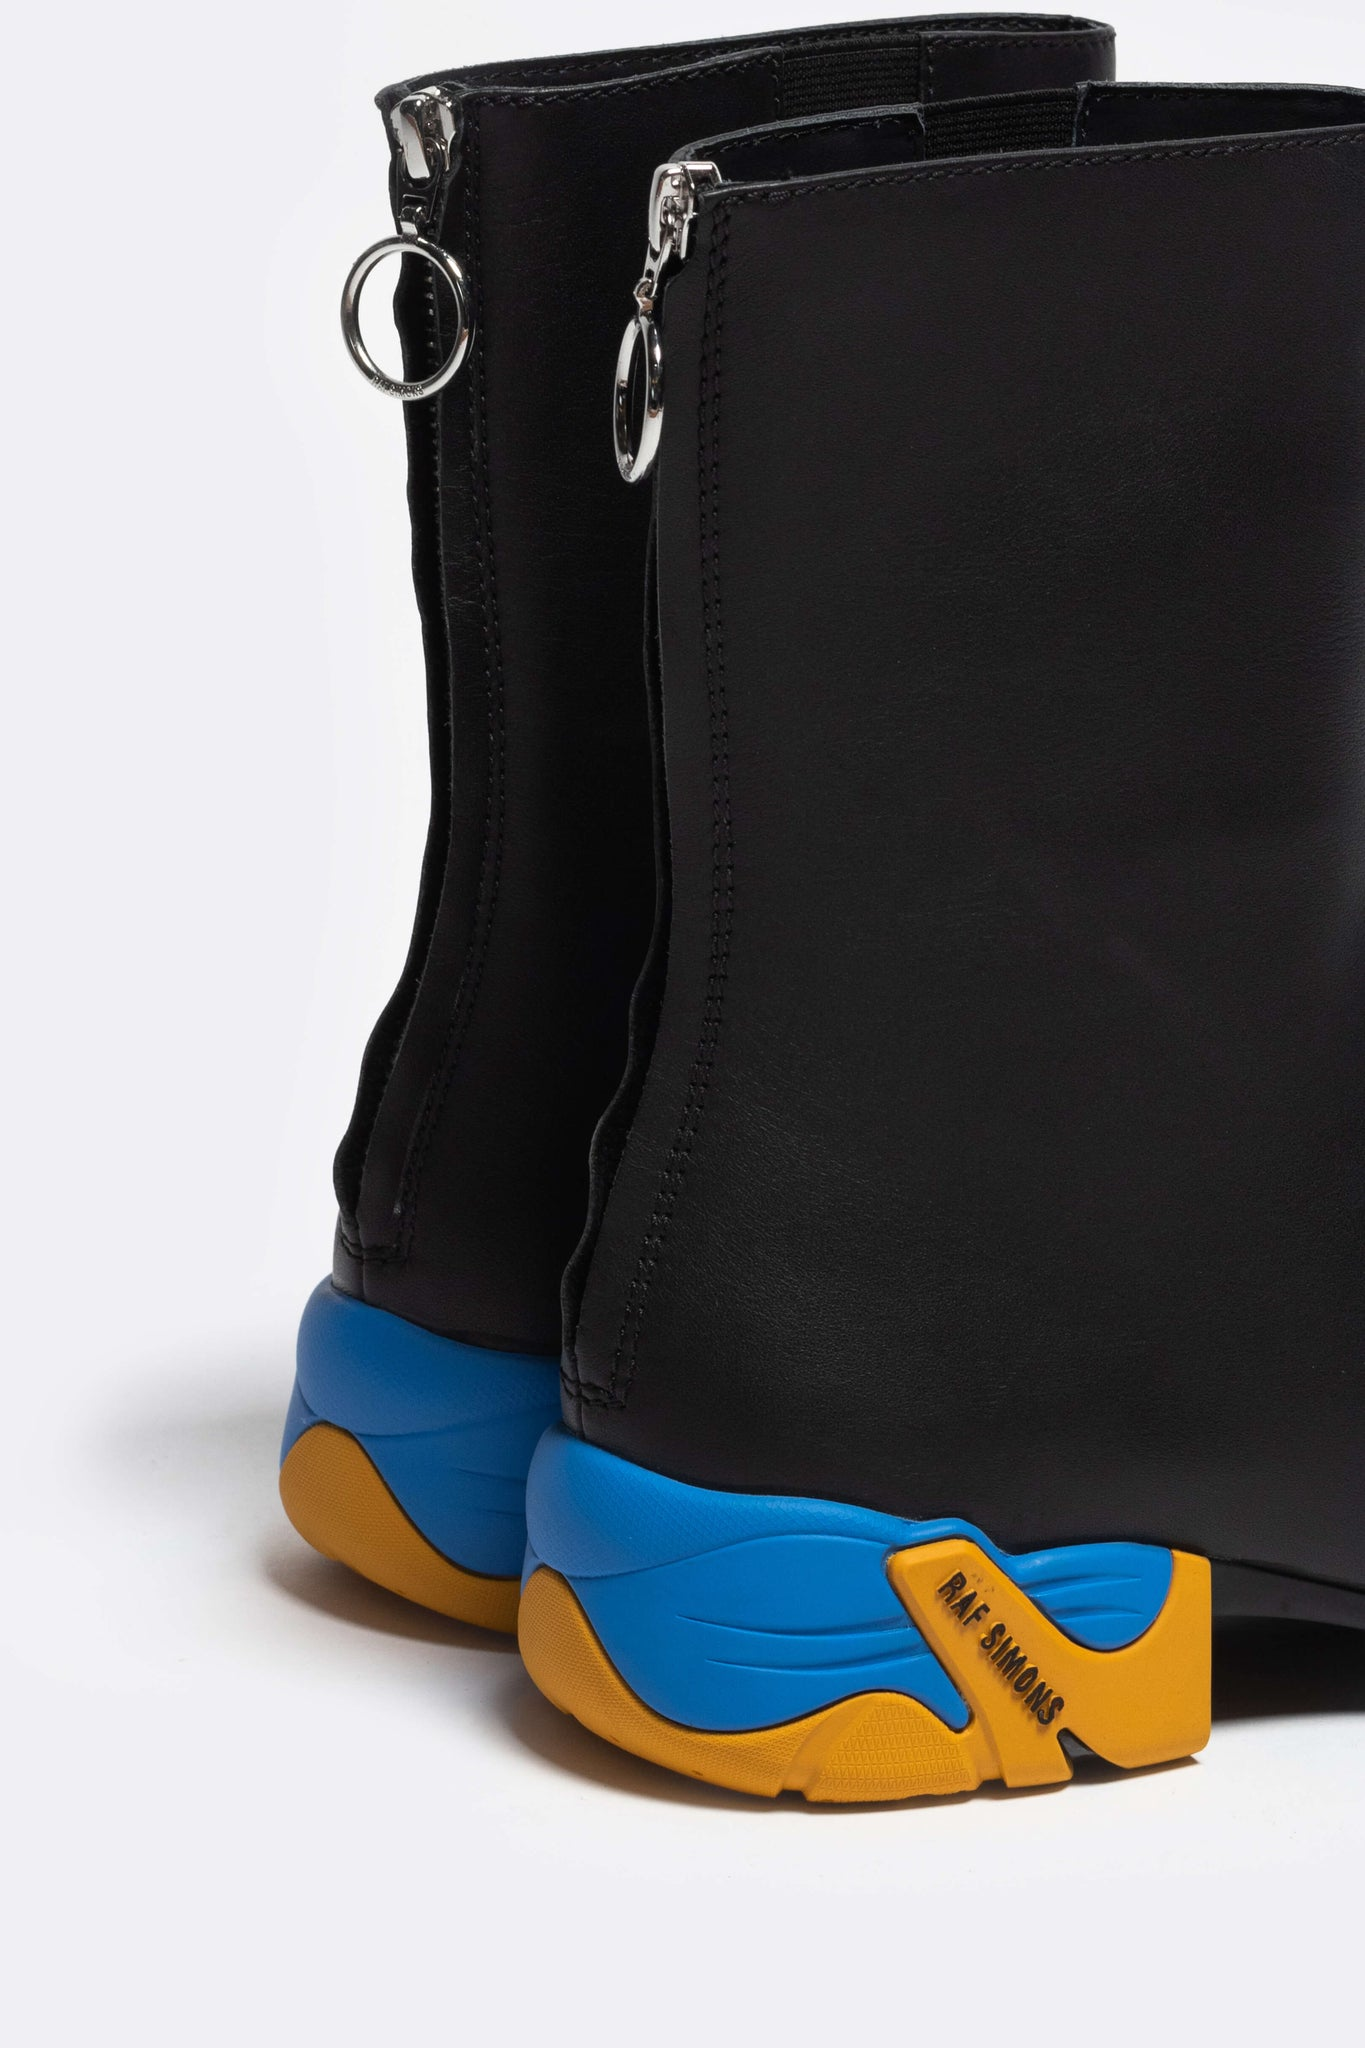 Solaris-2 High Leather Black/blue/yellow